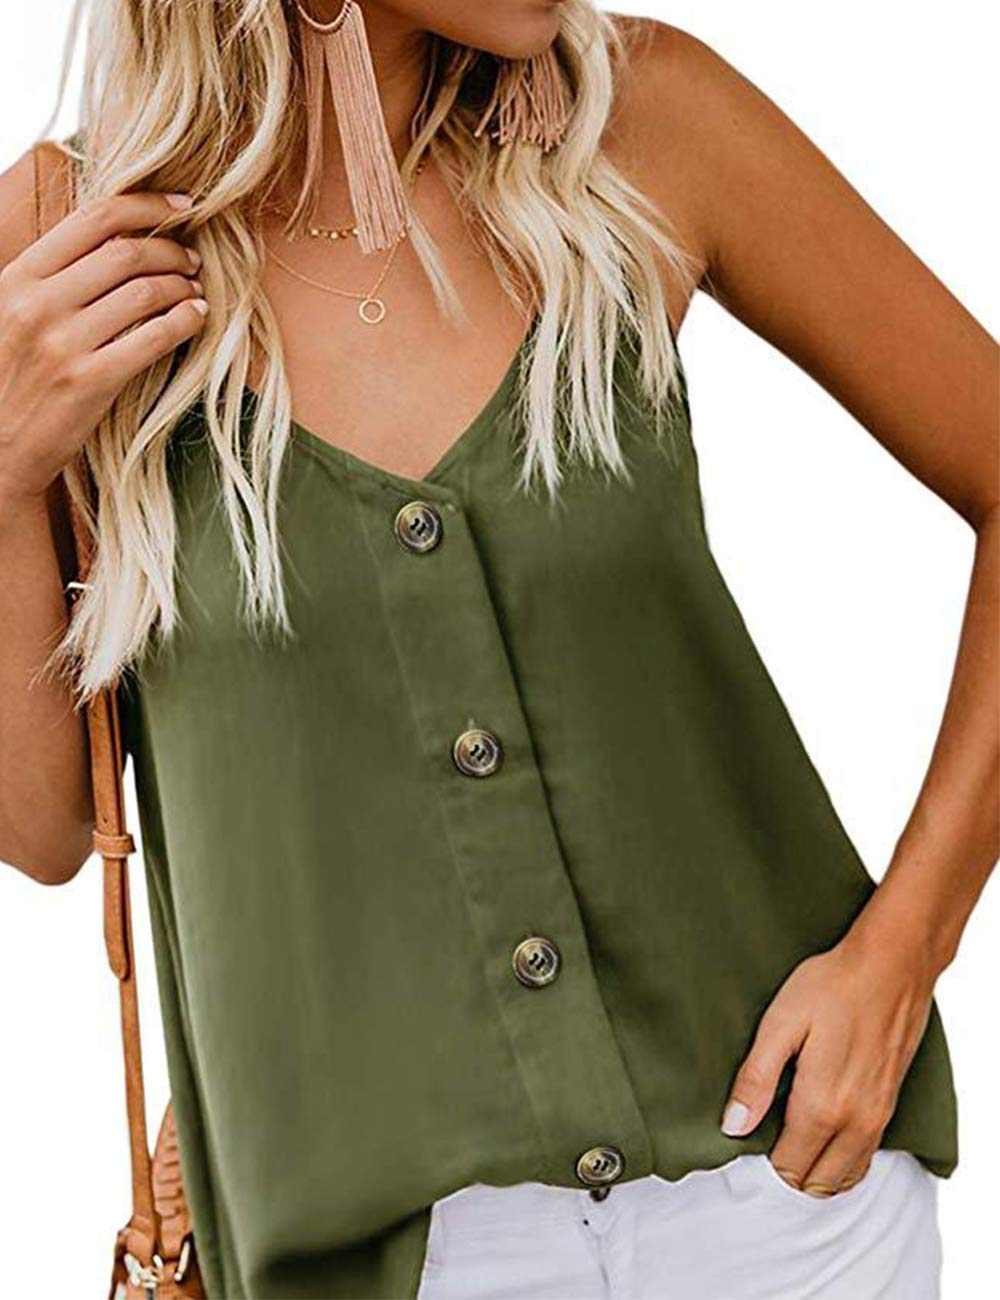 RSM &CHENG Women's Button Down V Neck Strappy Tank Tops Loose Casual Sleeveless Shirts Blouses(Arm Green,M